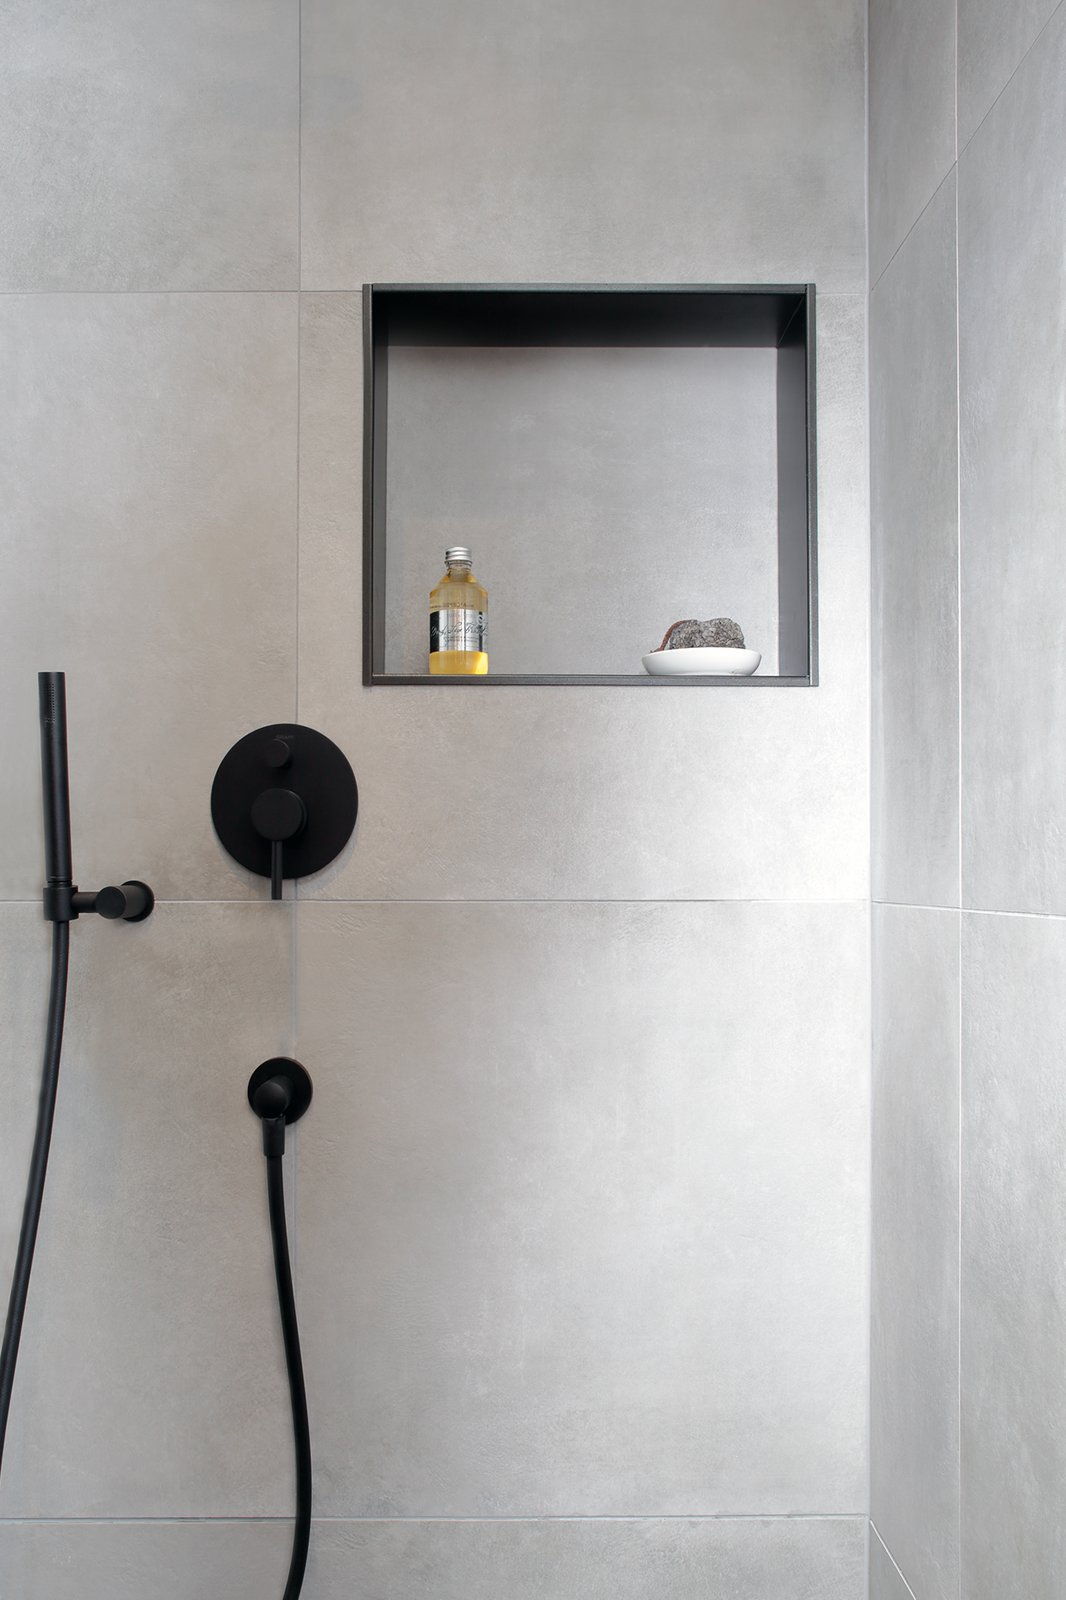 Bath Room, Full Shower, and Ceramic Tile Wall  Mountain Apartment in Ore Mountain, Czech Republic by Martina Schultes www.martinaschultes.com